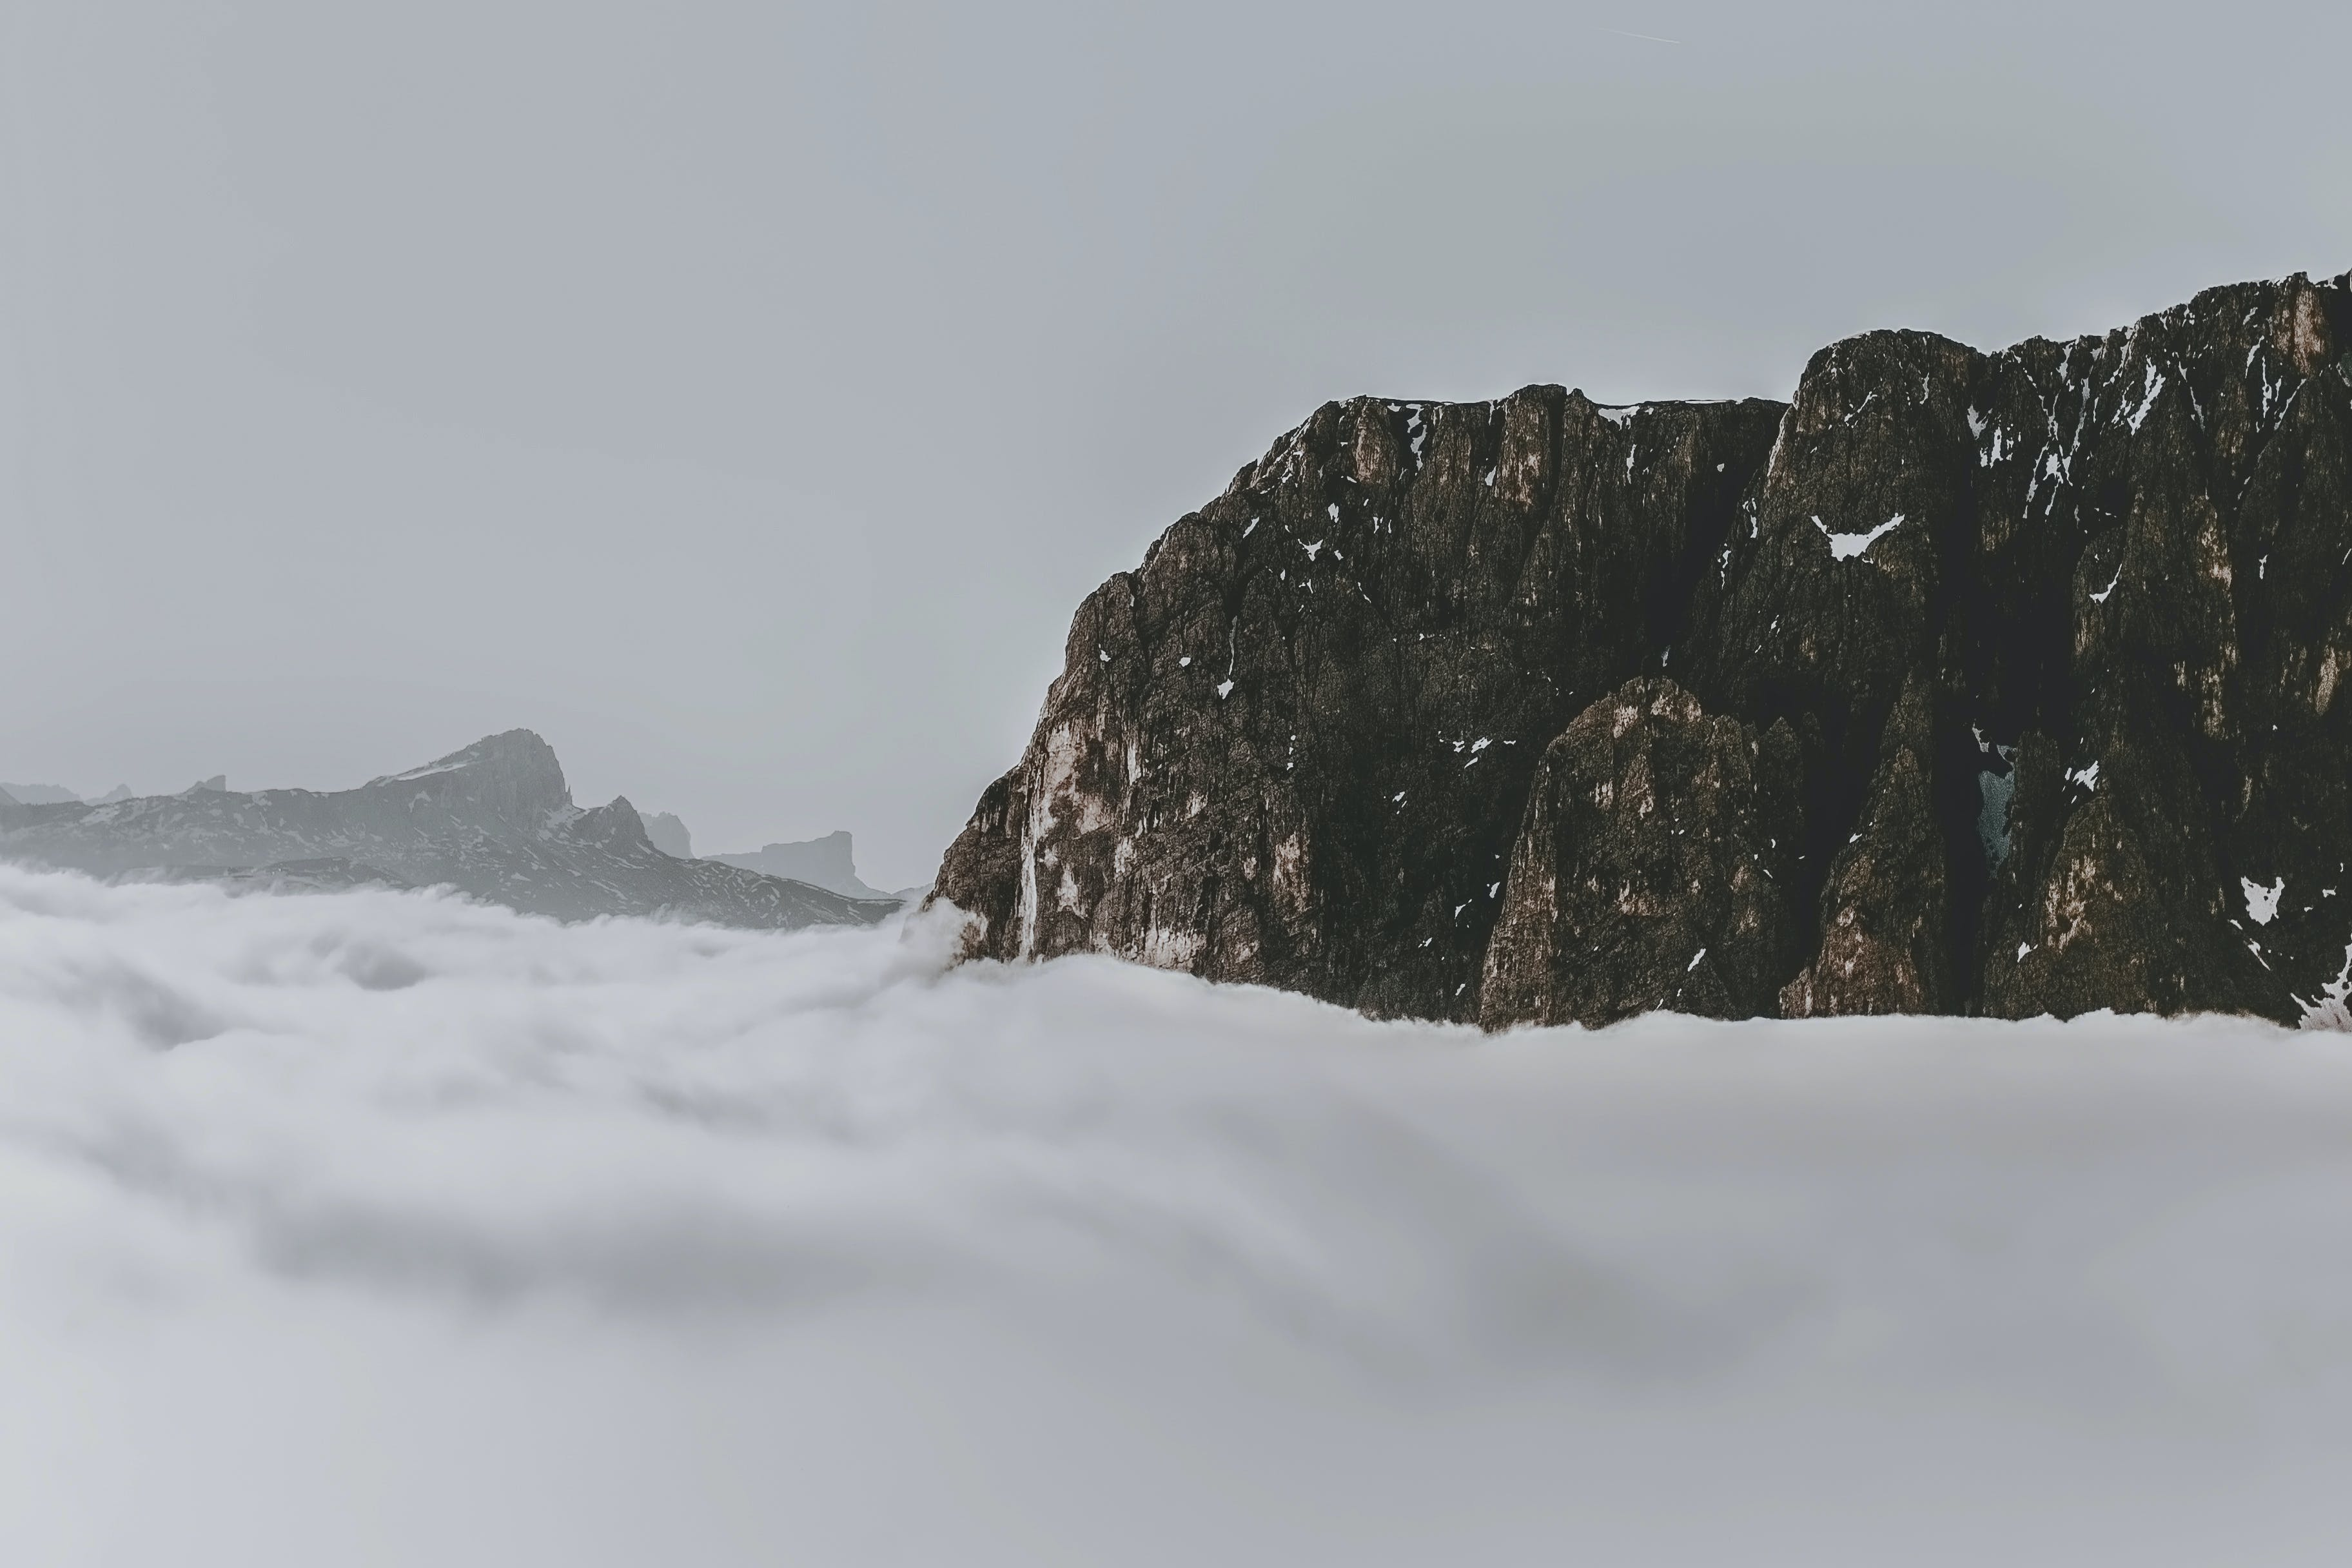 Rock Formation Surrounded by Clouds